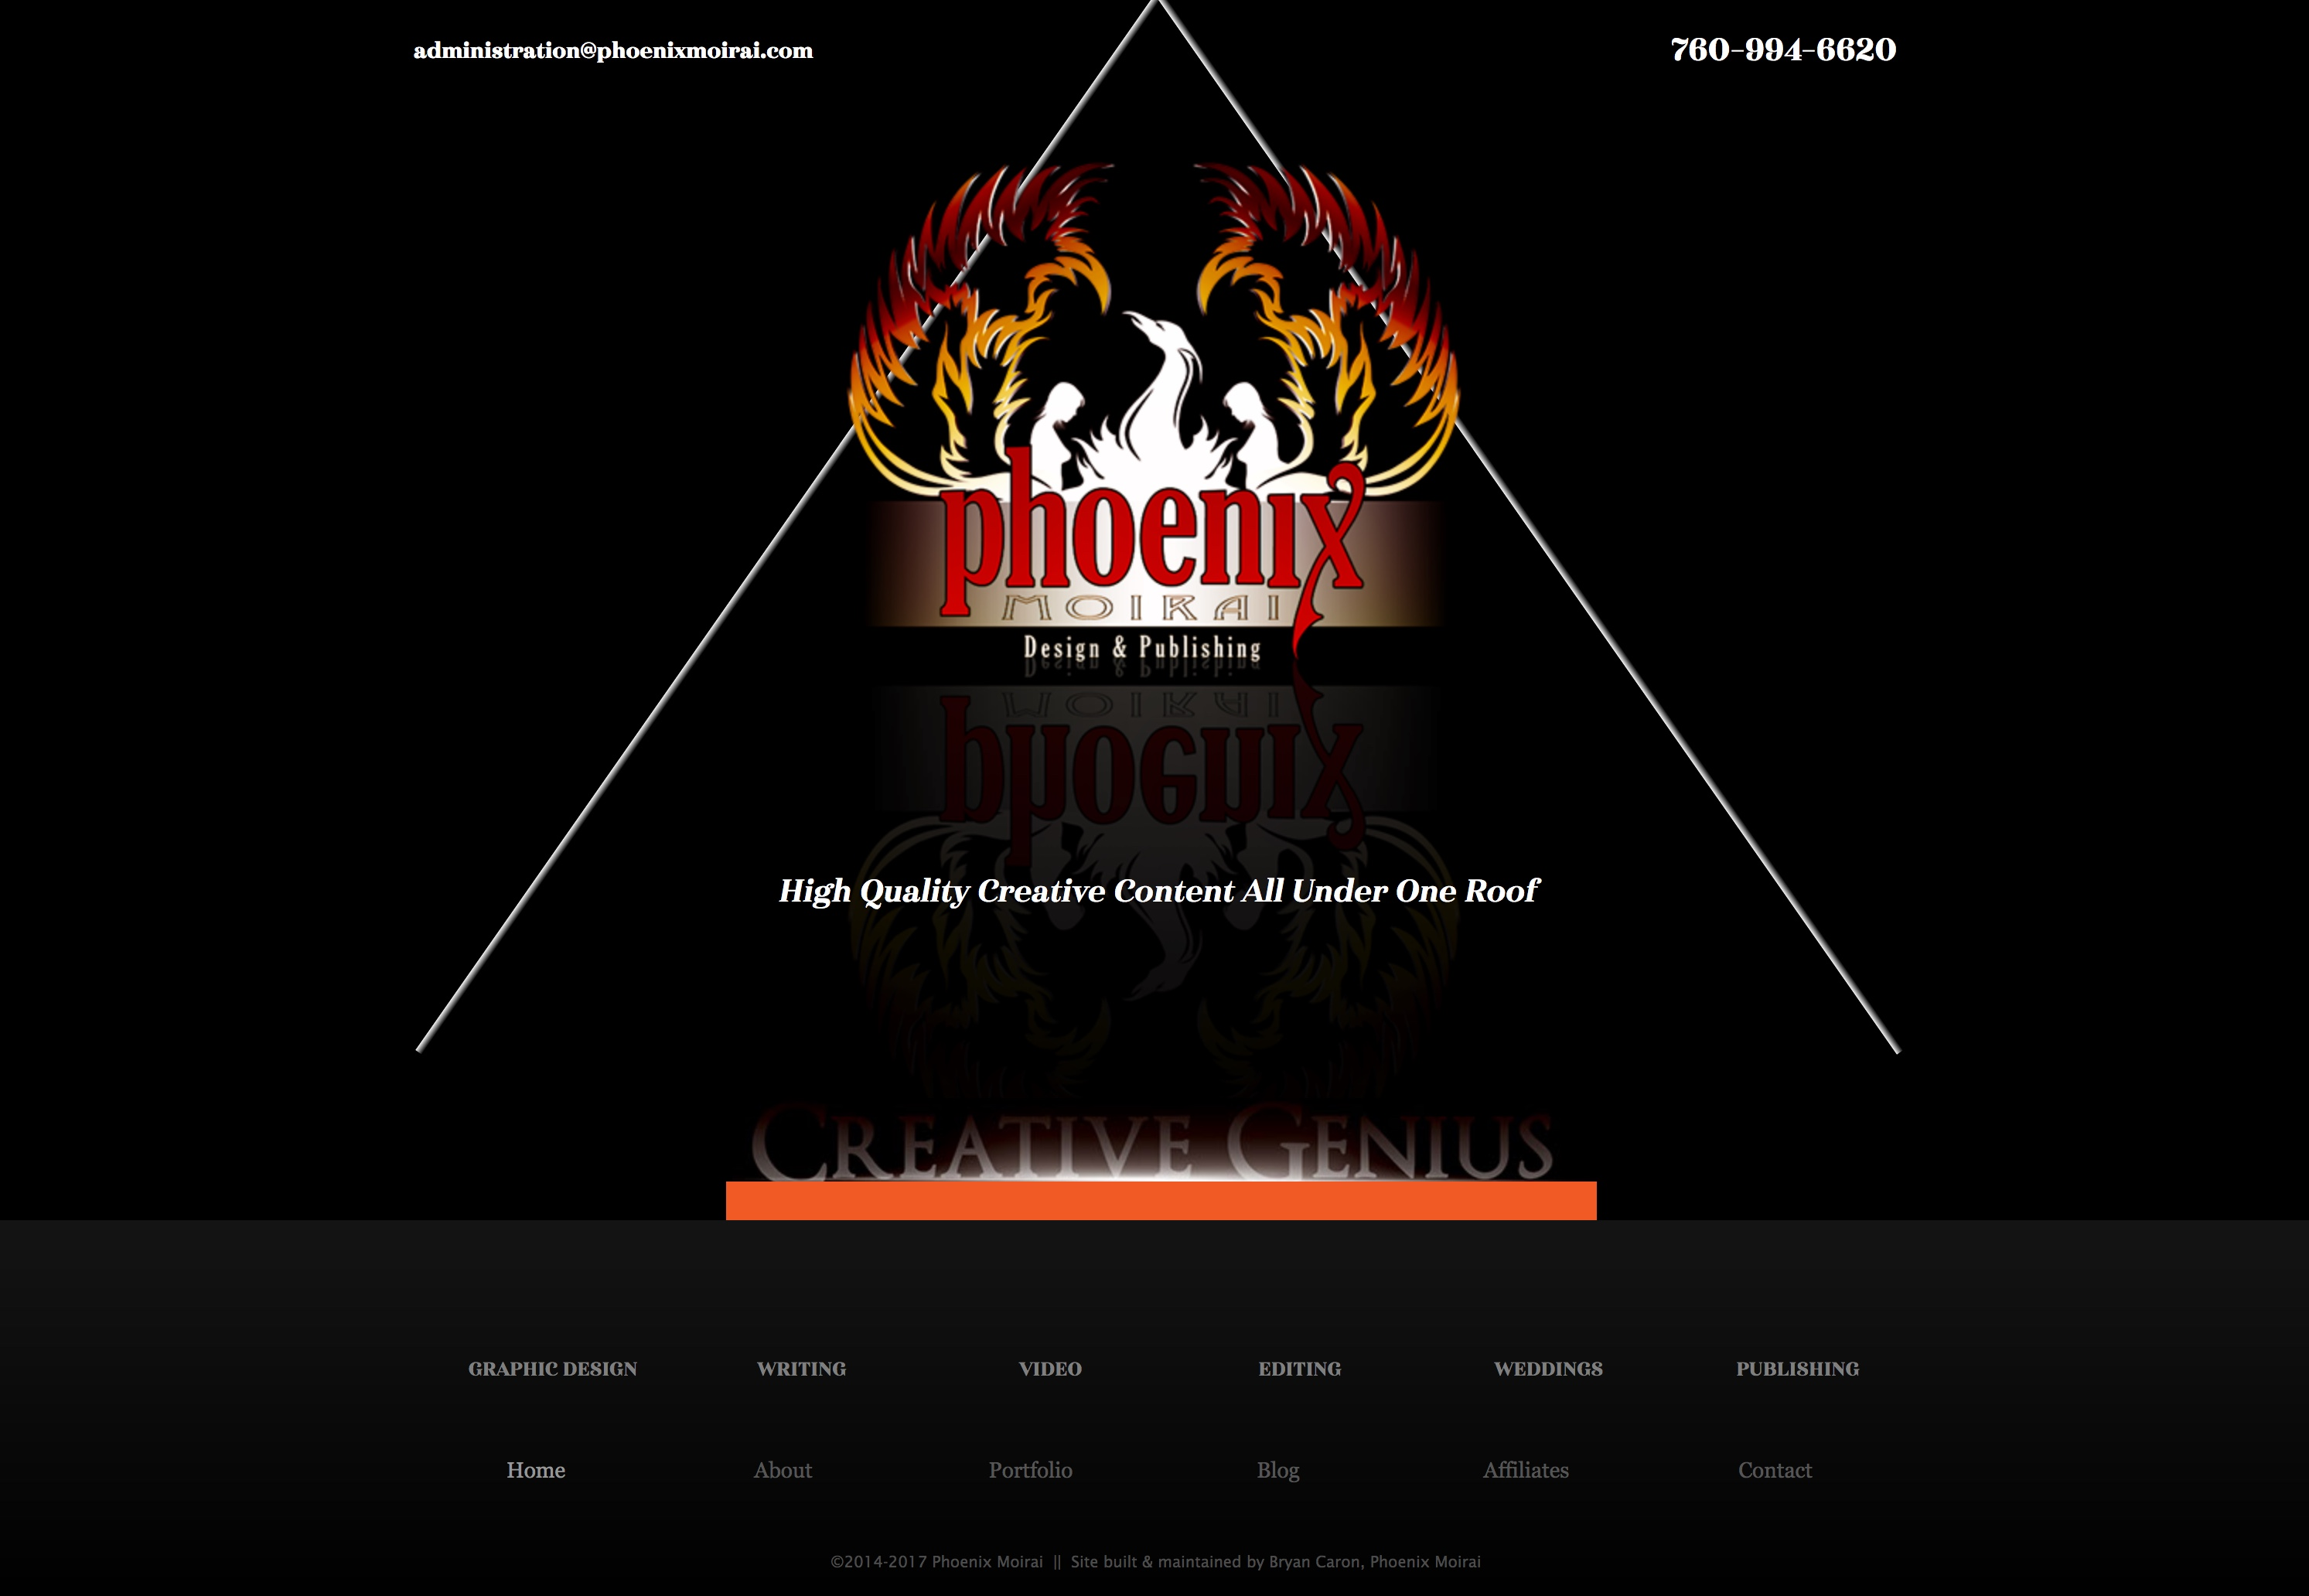 phoenix-moirai-website-screenshot-home-graphic-design-writing-videography-video-creative-genius-jpg